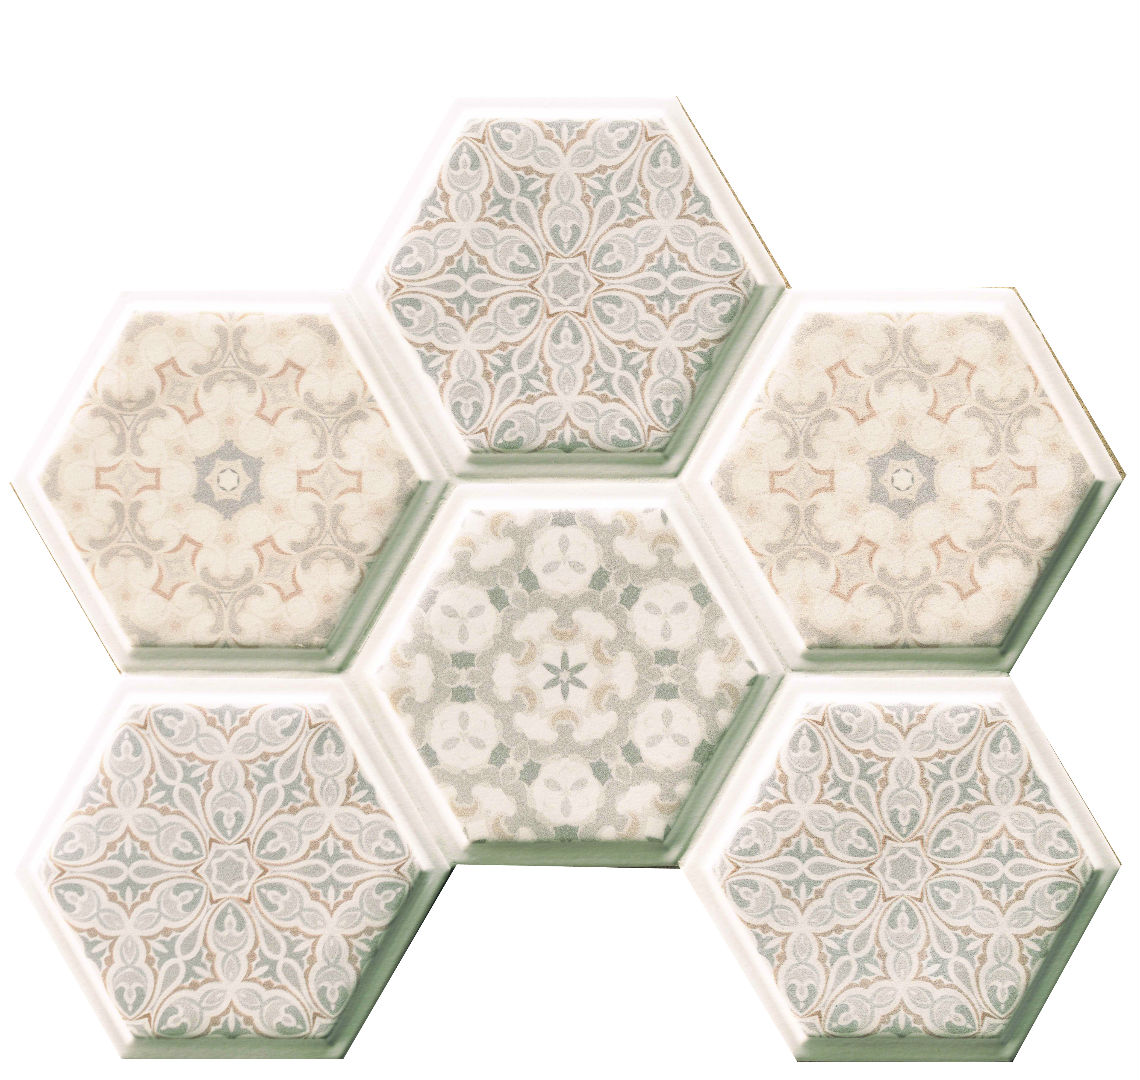 Natucer New Panal Decor Tempo Hex 15x17